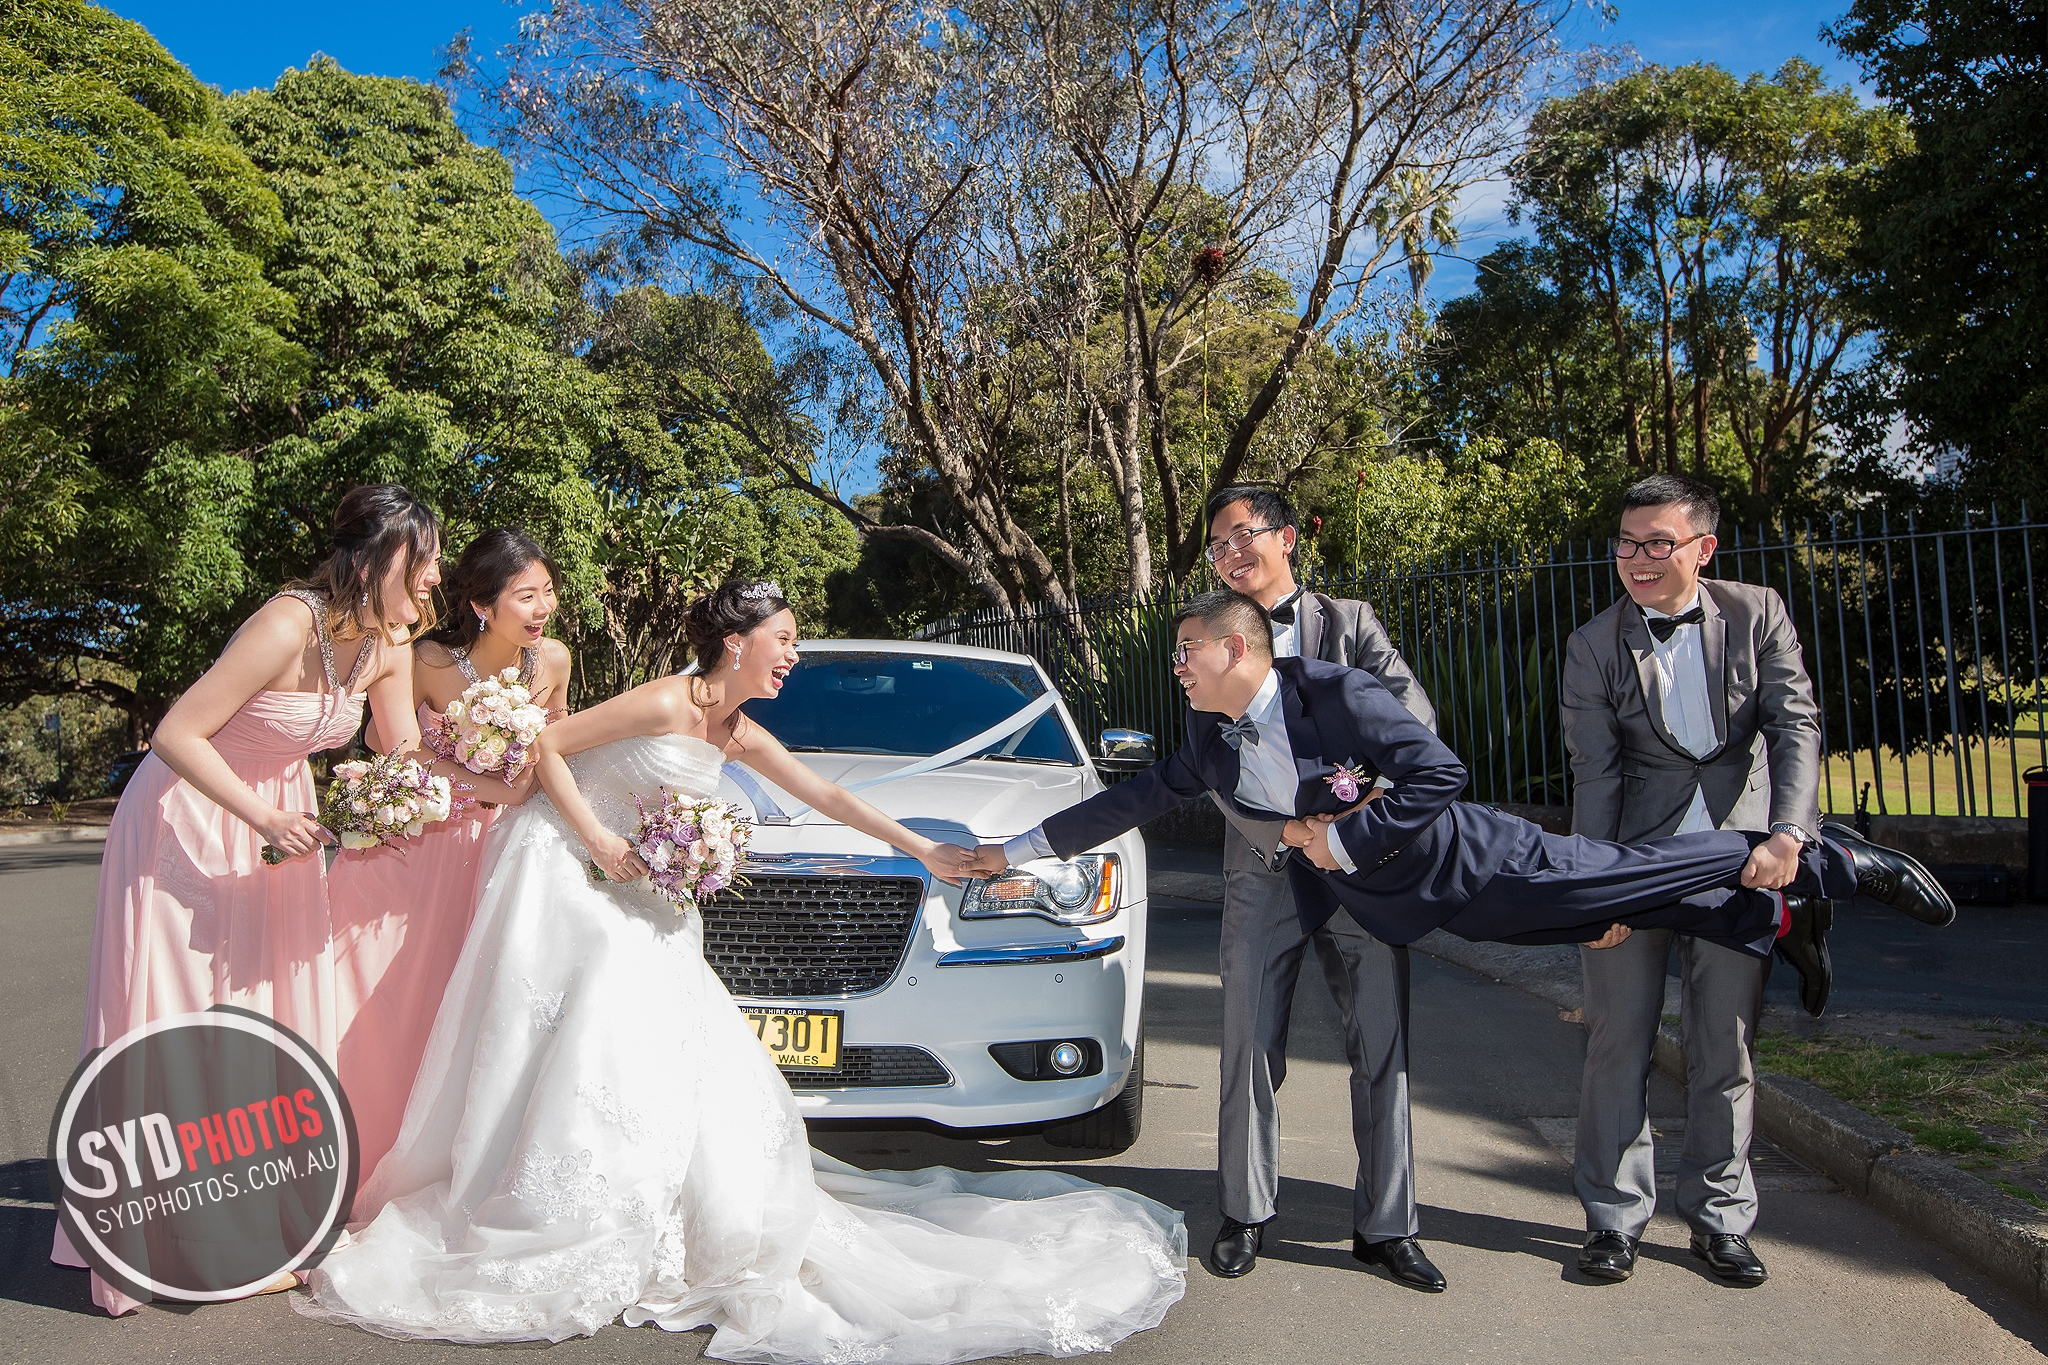 id-80174-20170903-326.jpg, By Photographer Sydphotos.wedding, Created on 11 Feb 2018, SYDPHOTOS Photography all rights reserved.